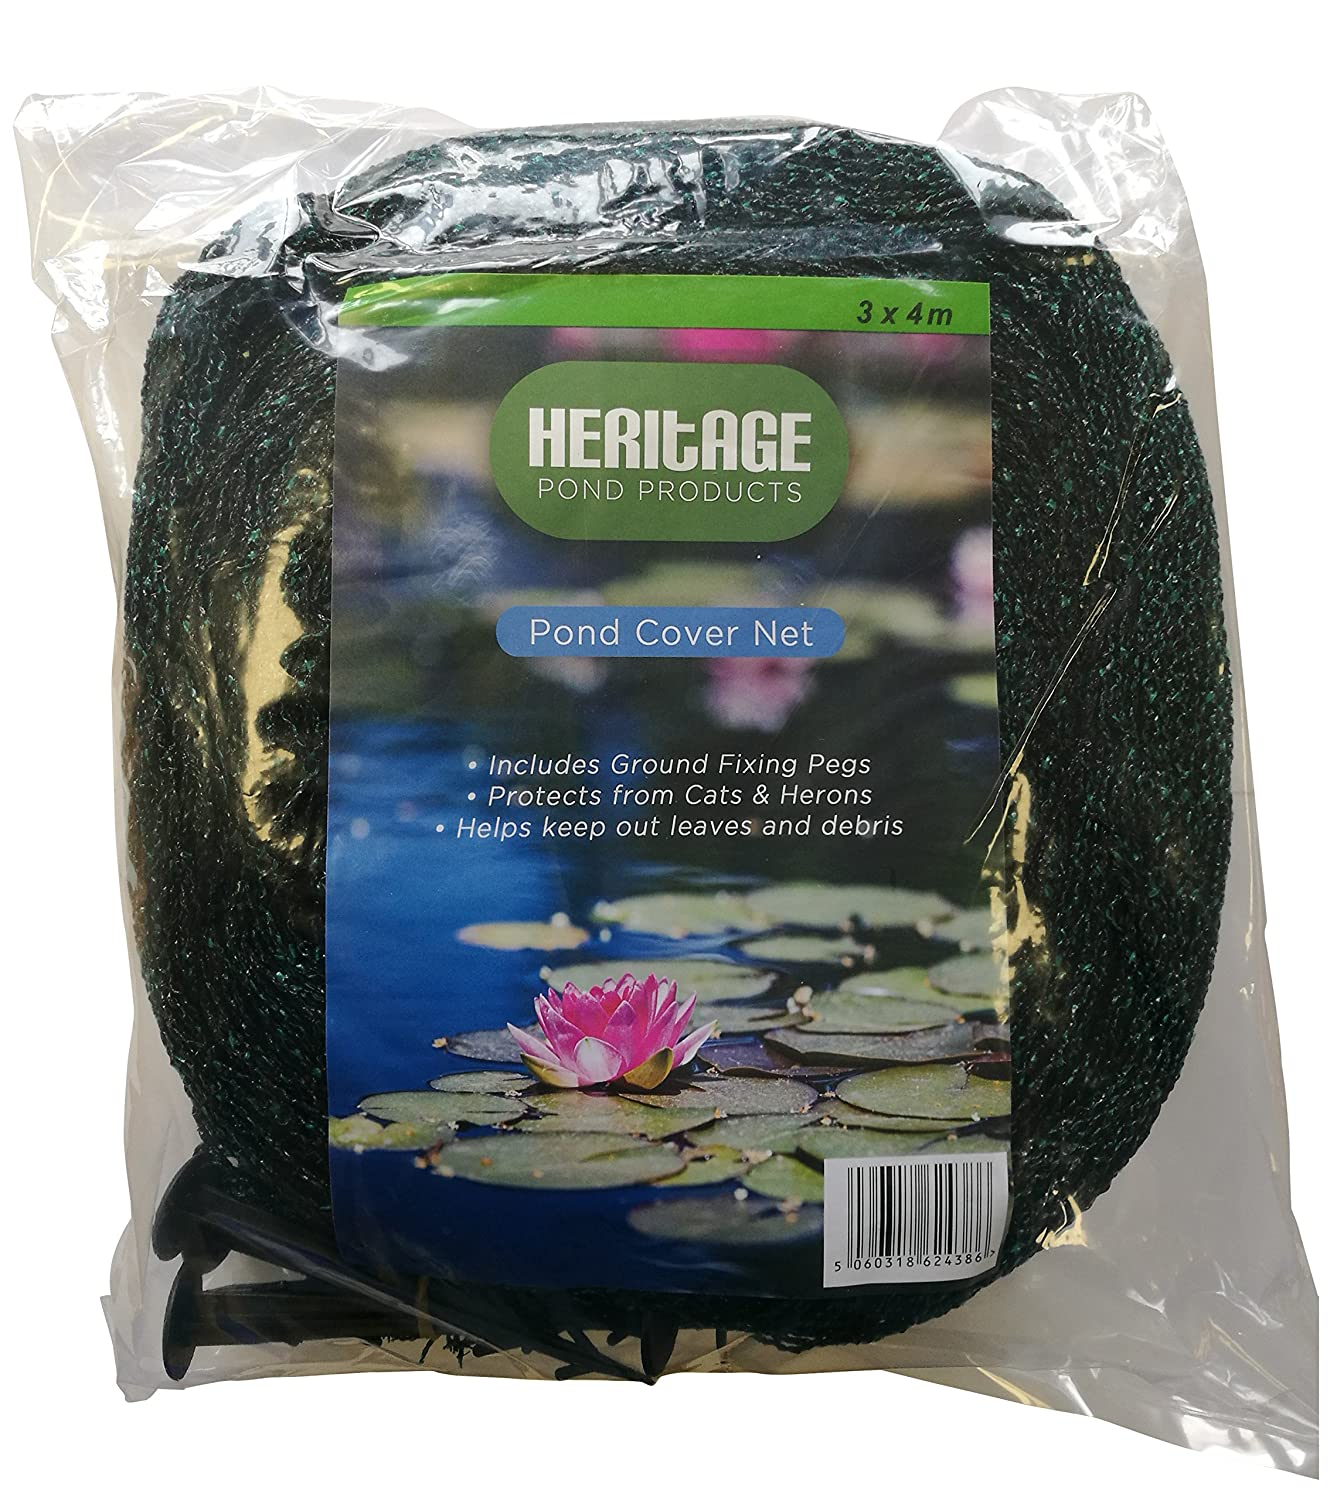 Heritage Pet Products Pond Cover Net Koi Fish Pond Netting Protects From Cats Leaves Herons (3m x 3m Pond net)